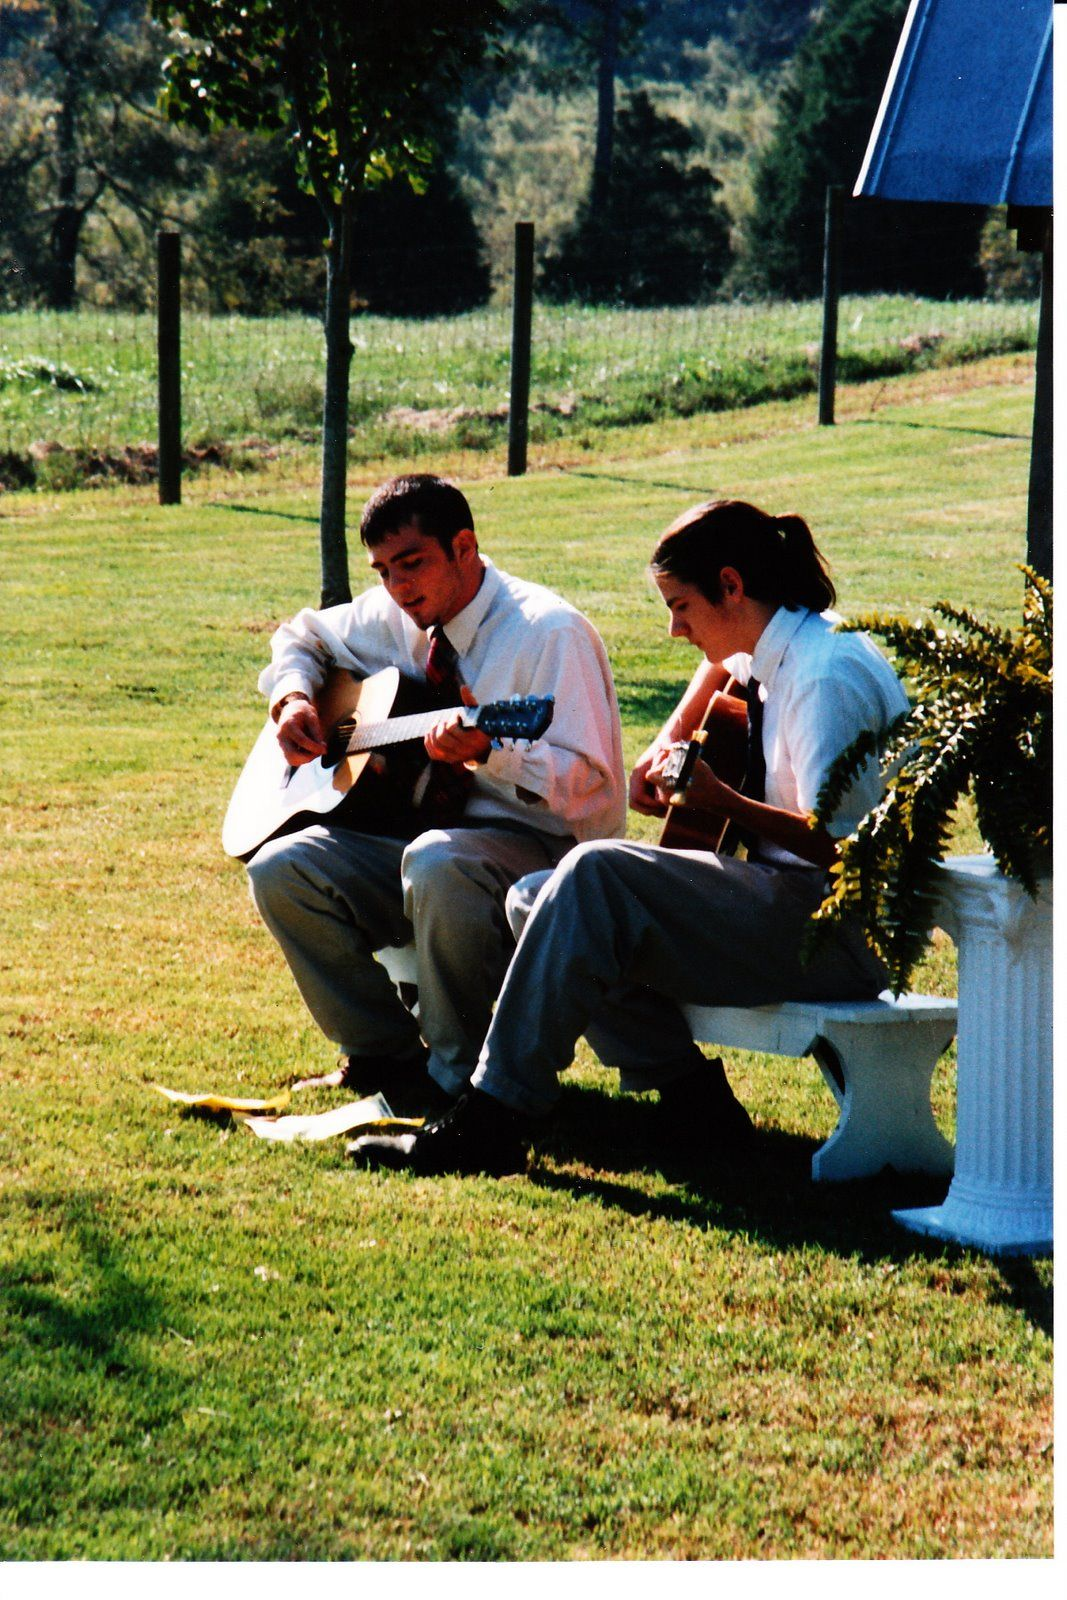 Seth and Scott Avett, ages 15 and 19